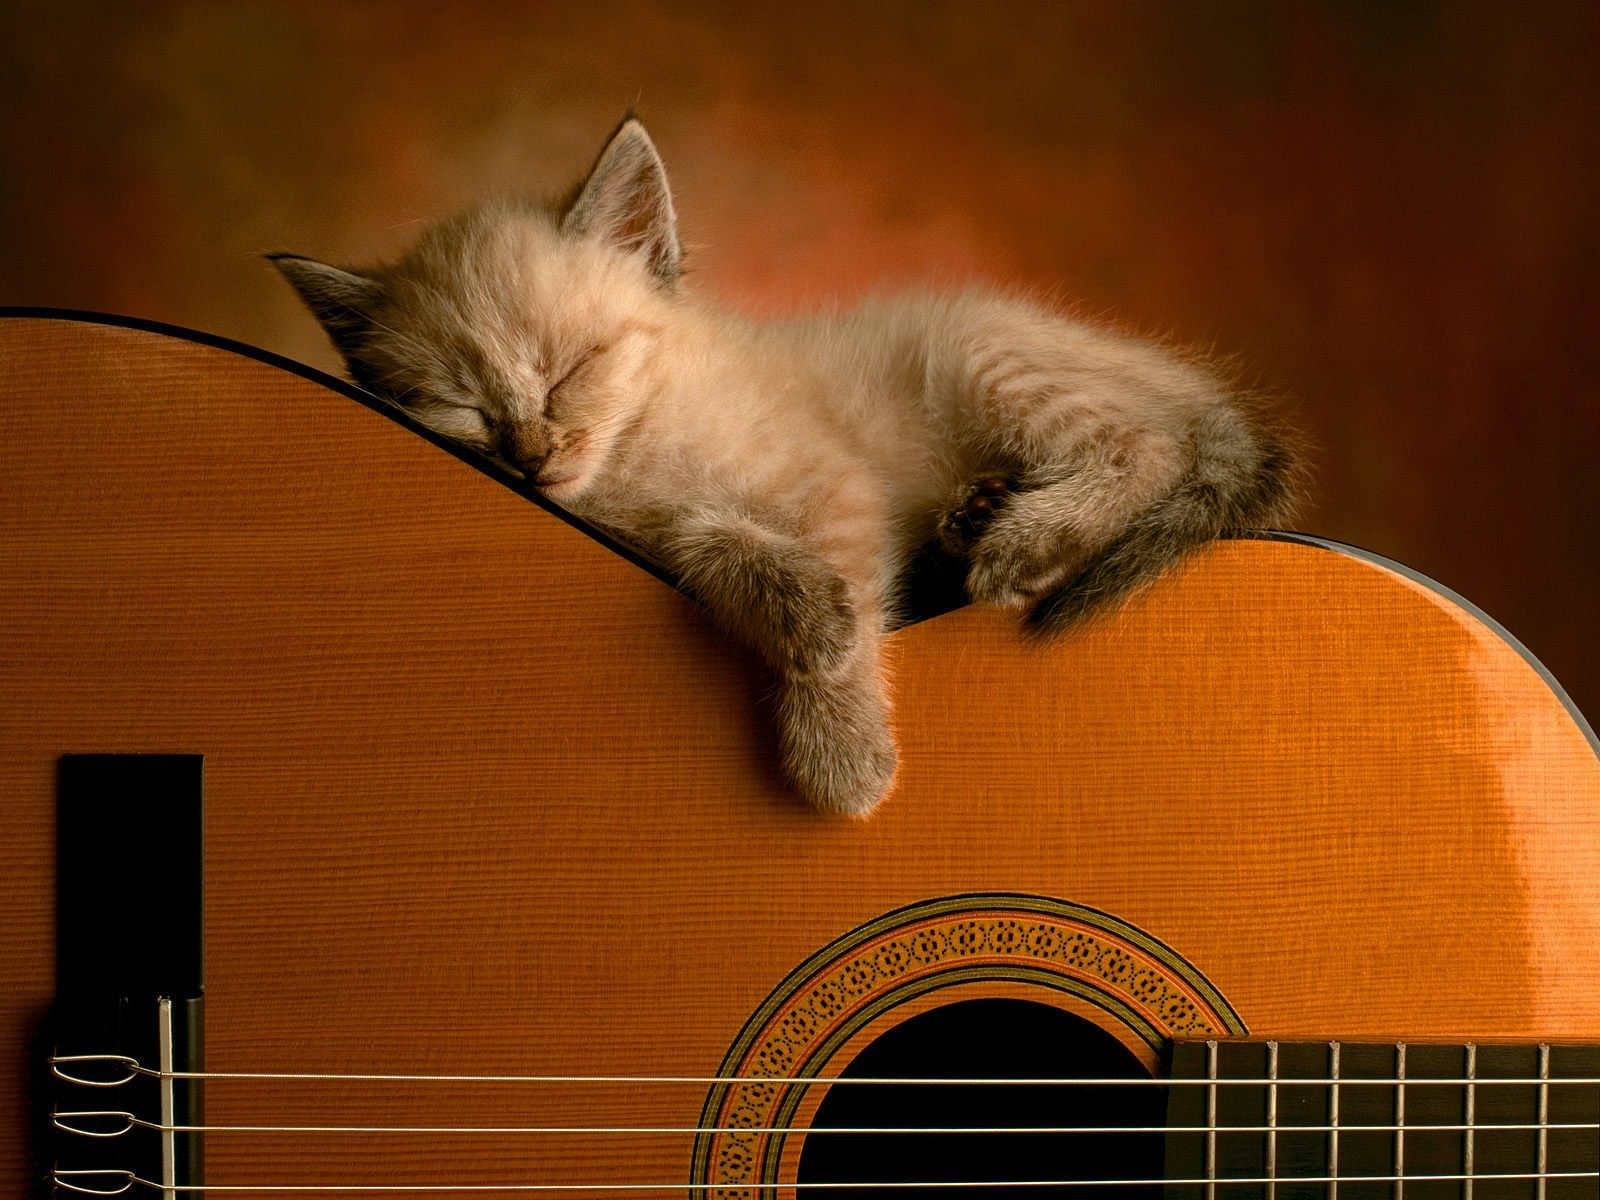 http://3.bp.blogspot.com/_E26Ndy_oKVc/TNNAxCl8msI/AAAAAAAAAM8/y4LA3ZHPQu4/s1600/Cat+sleeping+on+guitar.jpg